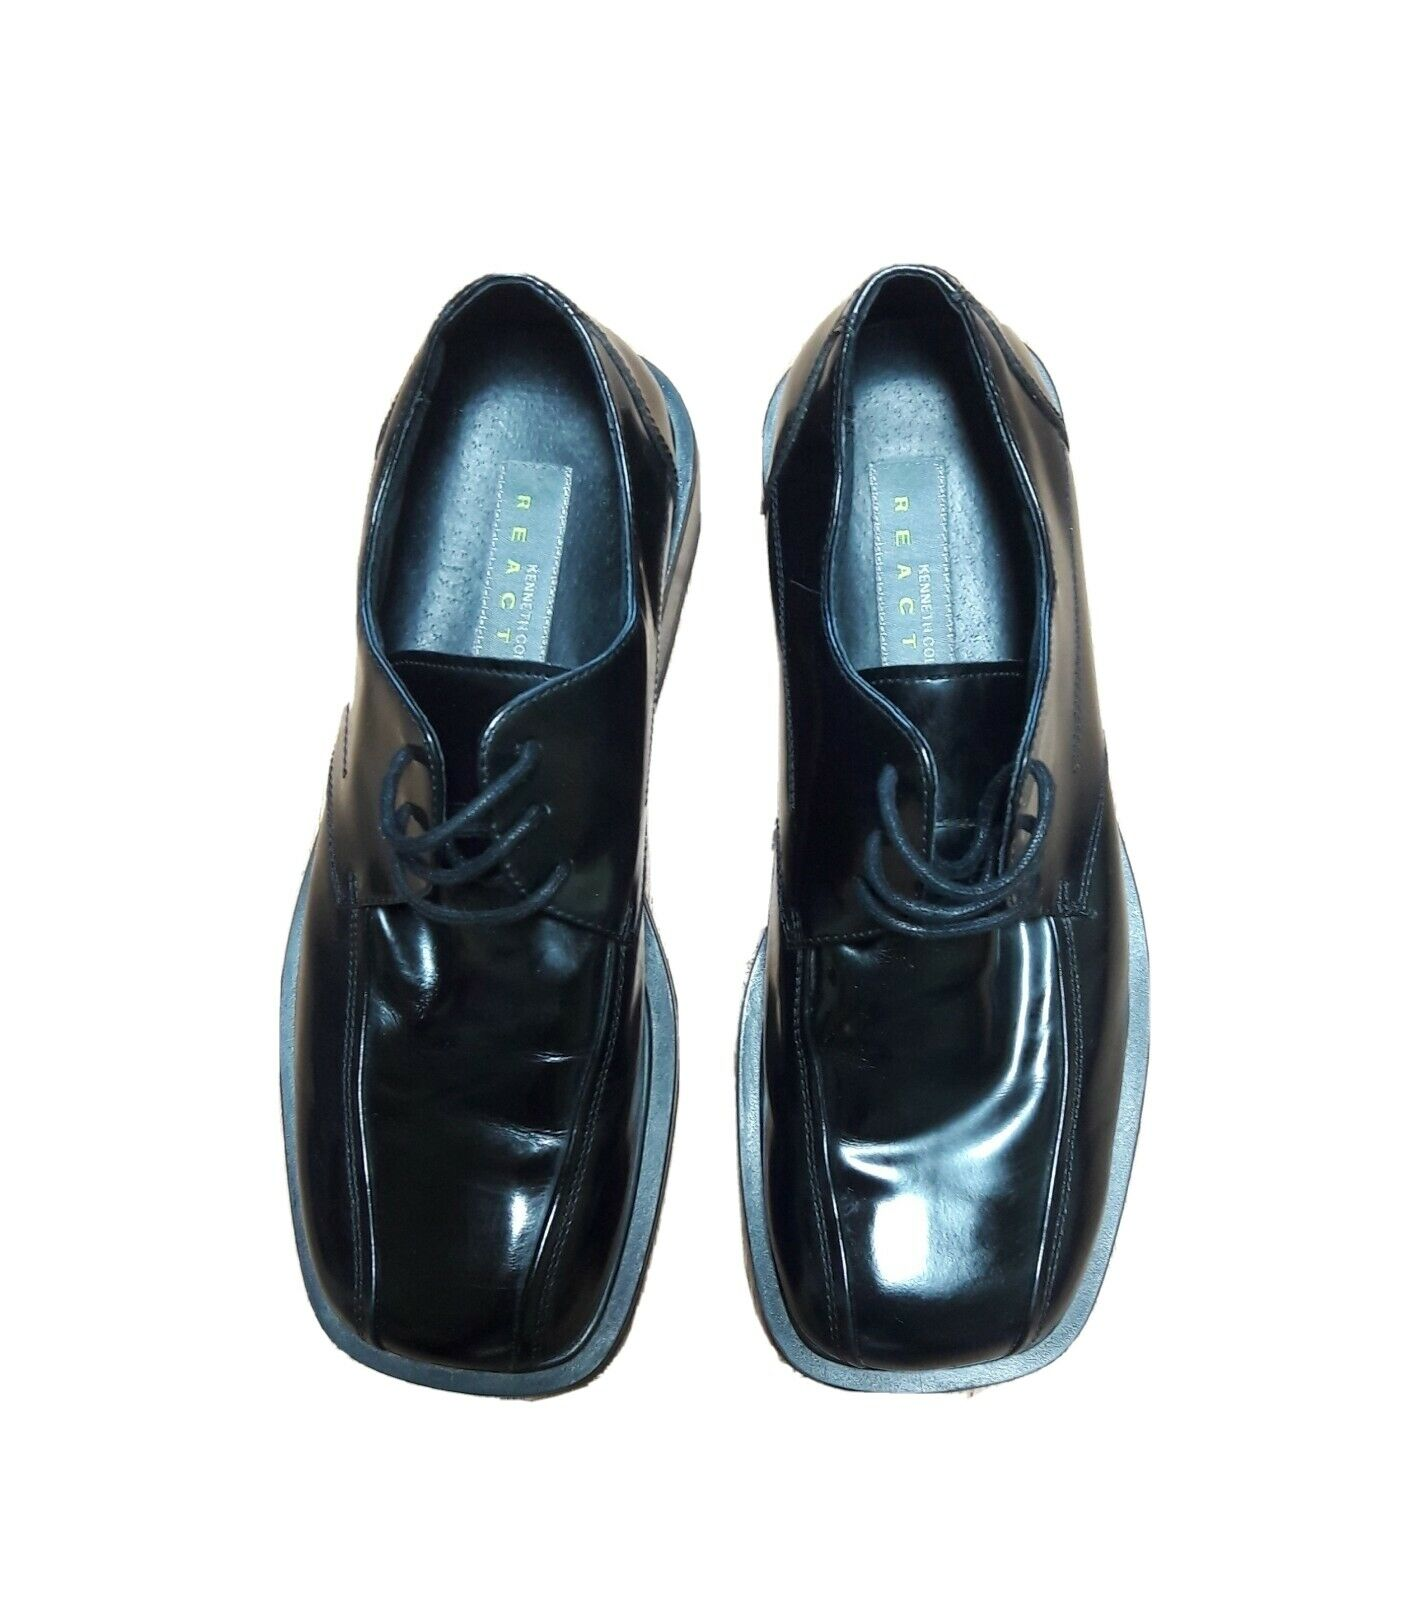 Kenneth Cole Reaction Mens 8.5 M Black Leather Square Toe Lace Up Dress Shoes